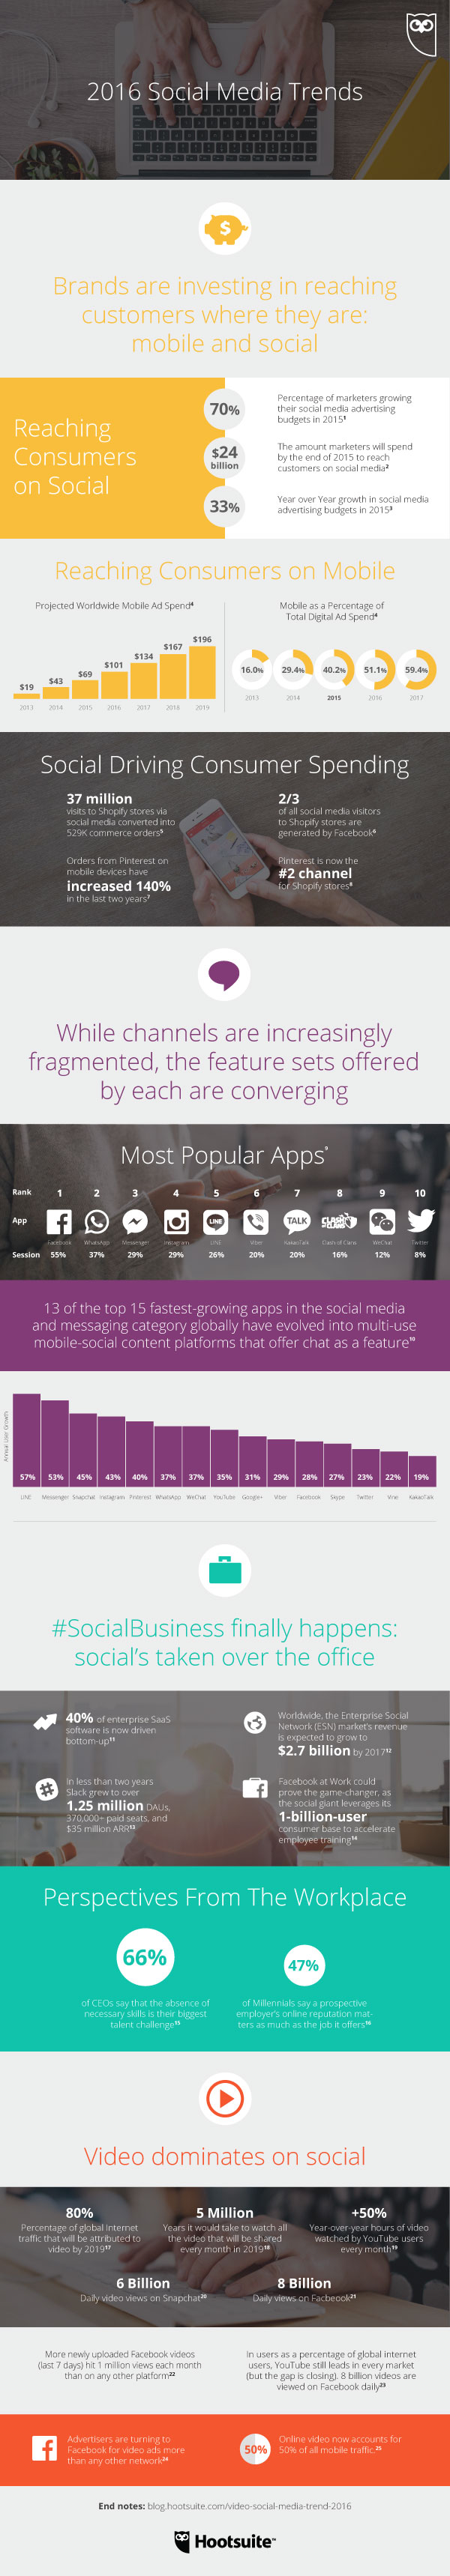 2016-social-media-trends-infographic